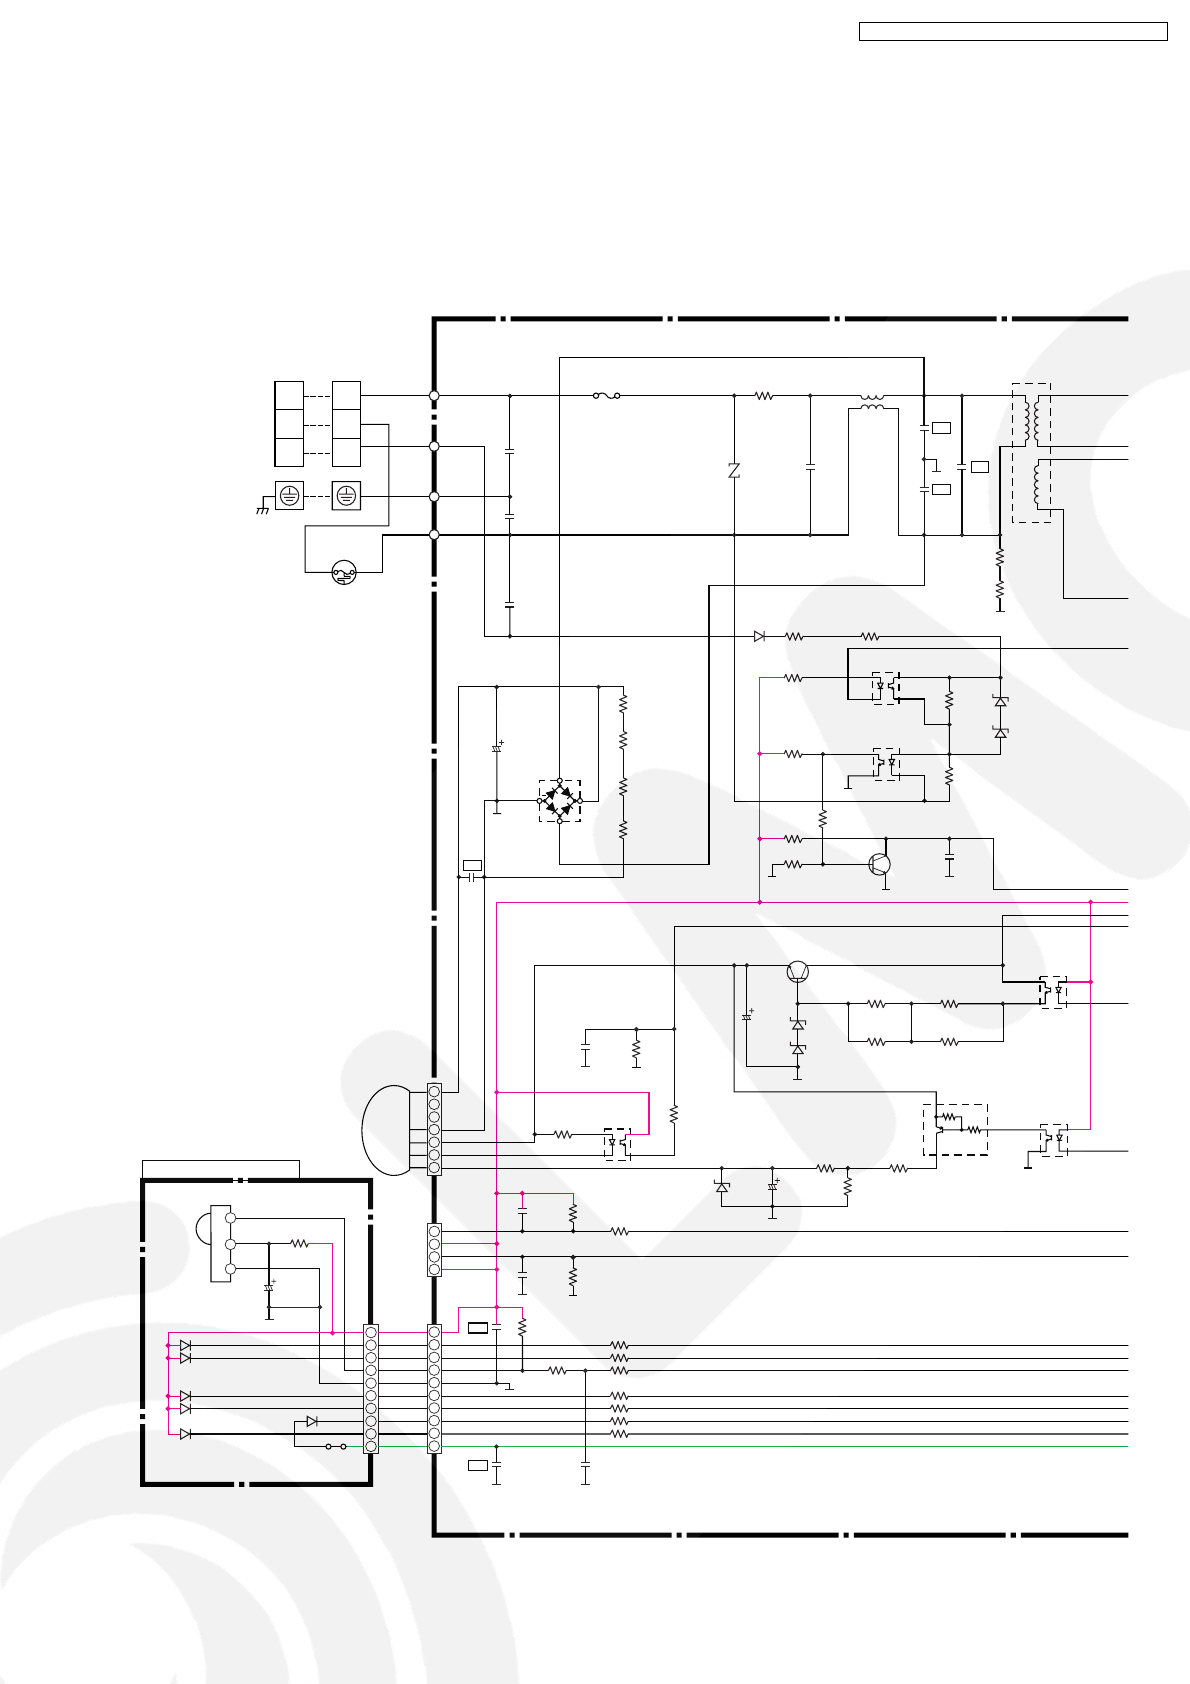 panasonic aircon wiring diagram